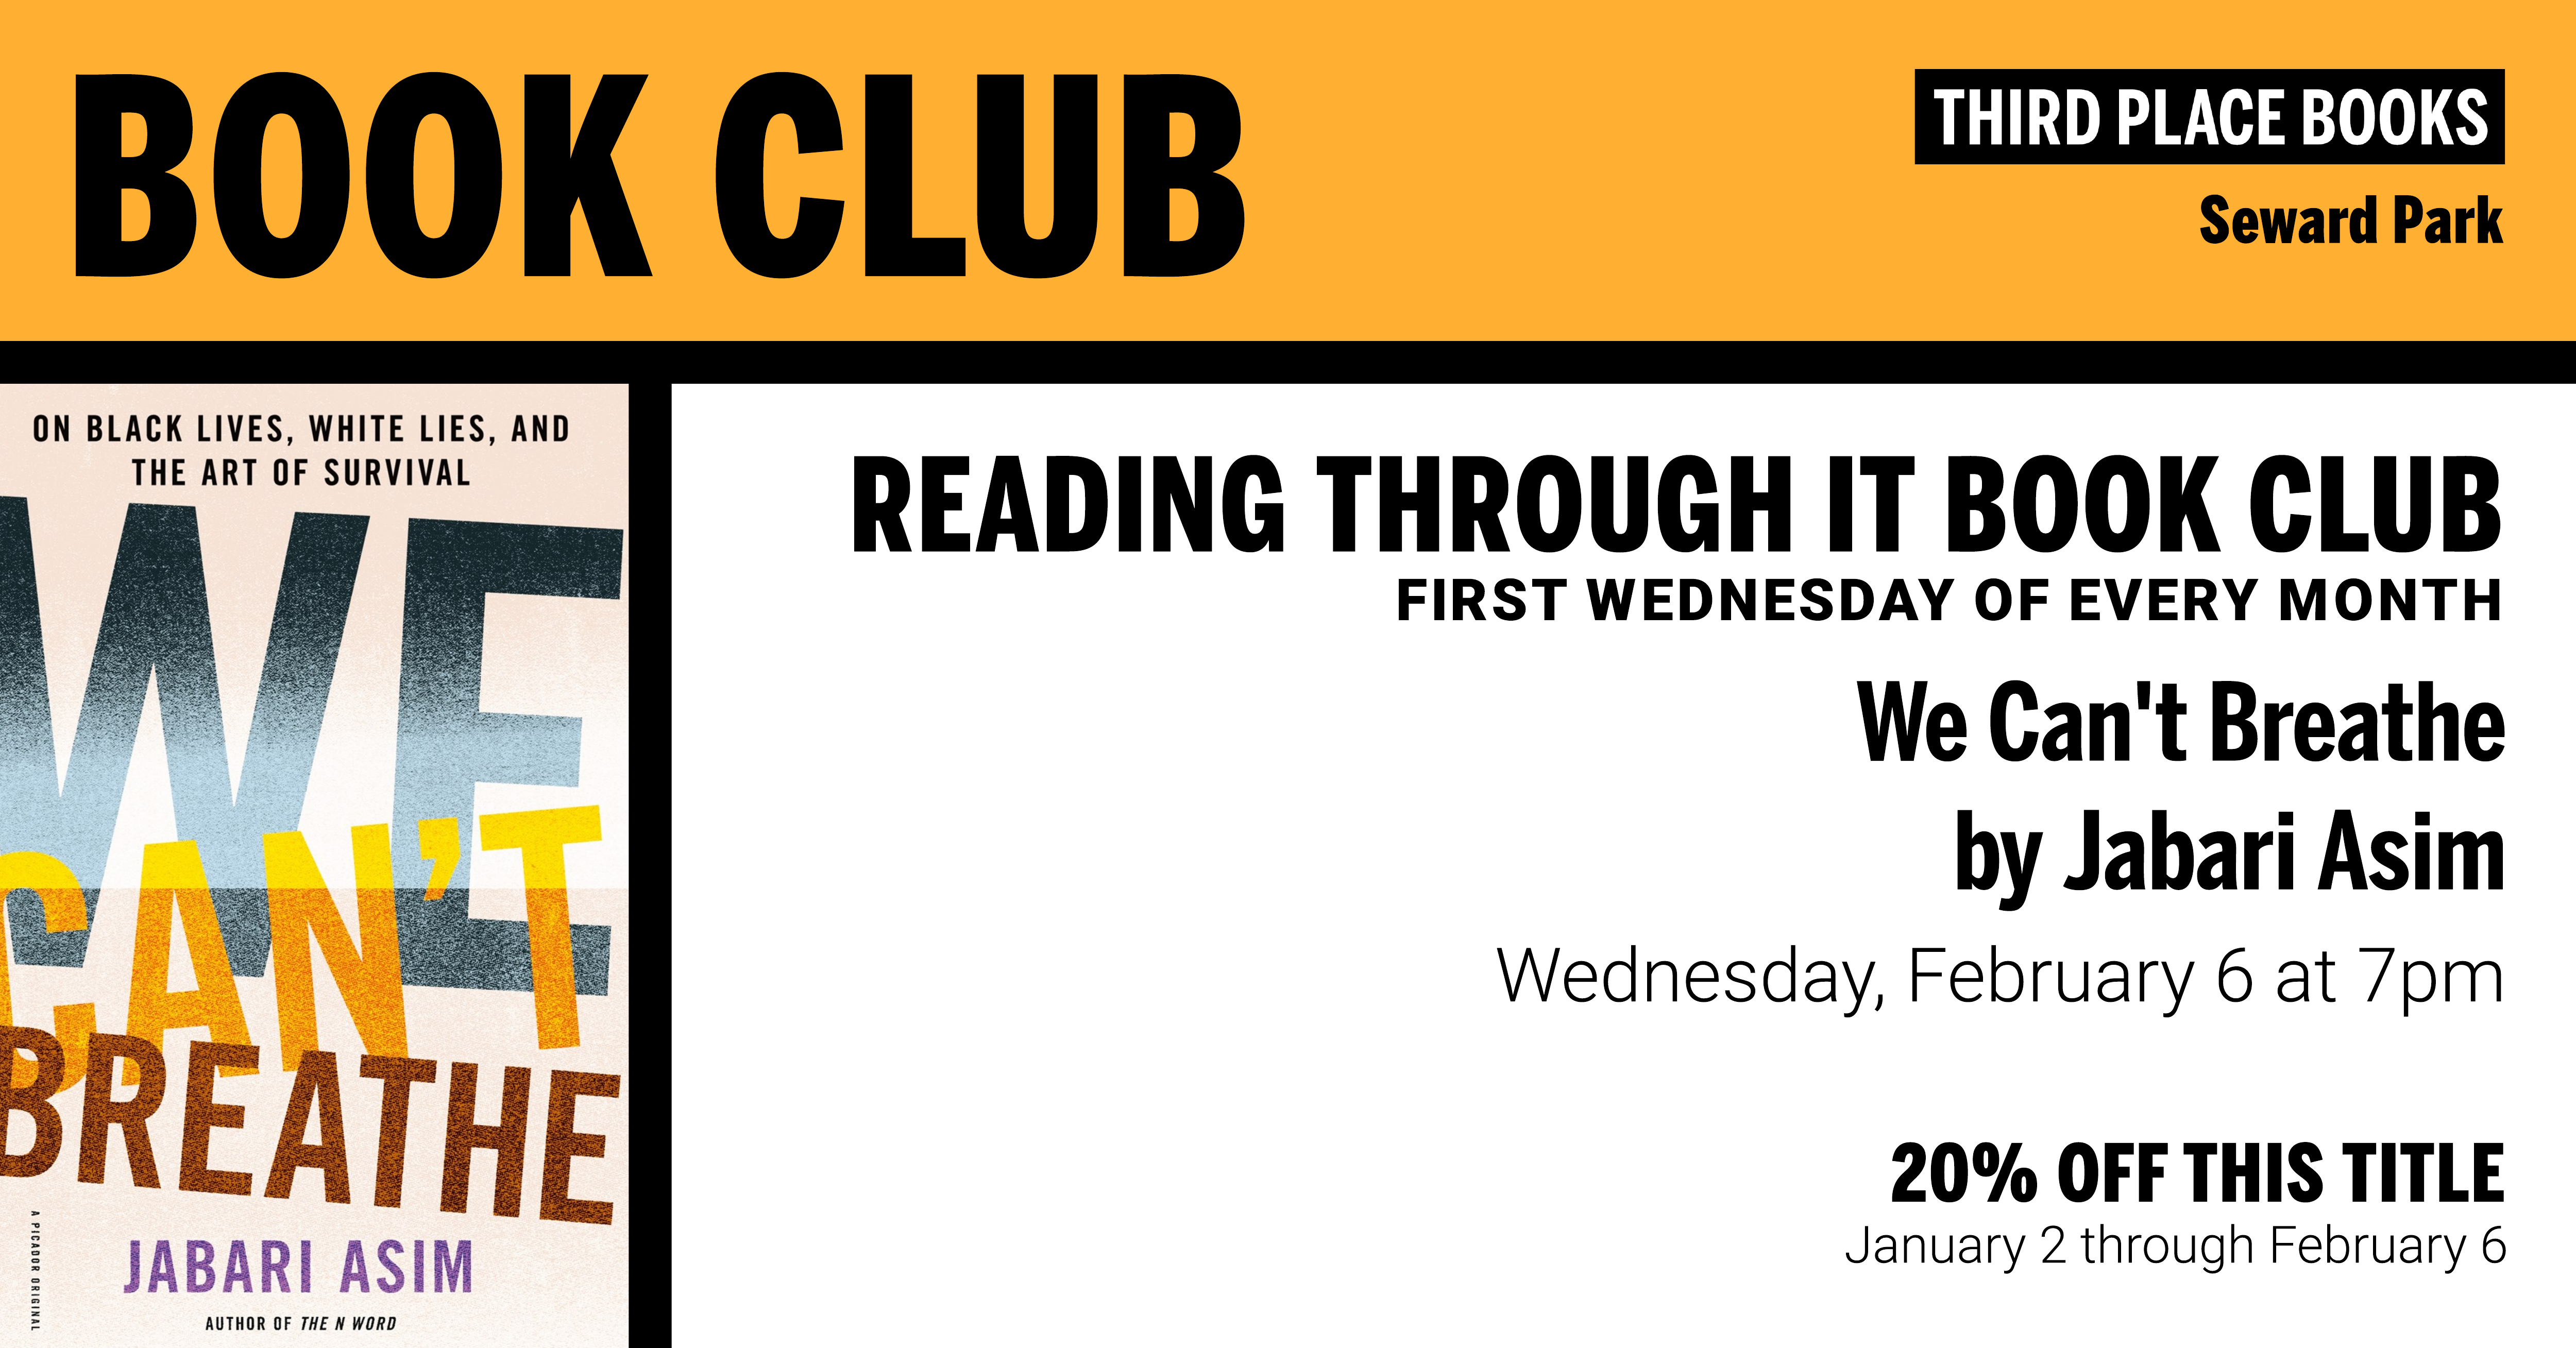 Reading Through It Book Club discussing We Can't Breathe on Wednesday, February 6 at 7pm